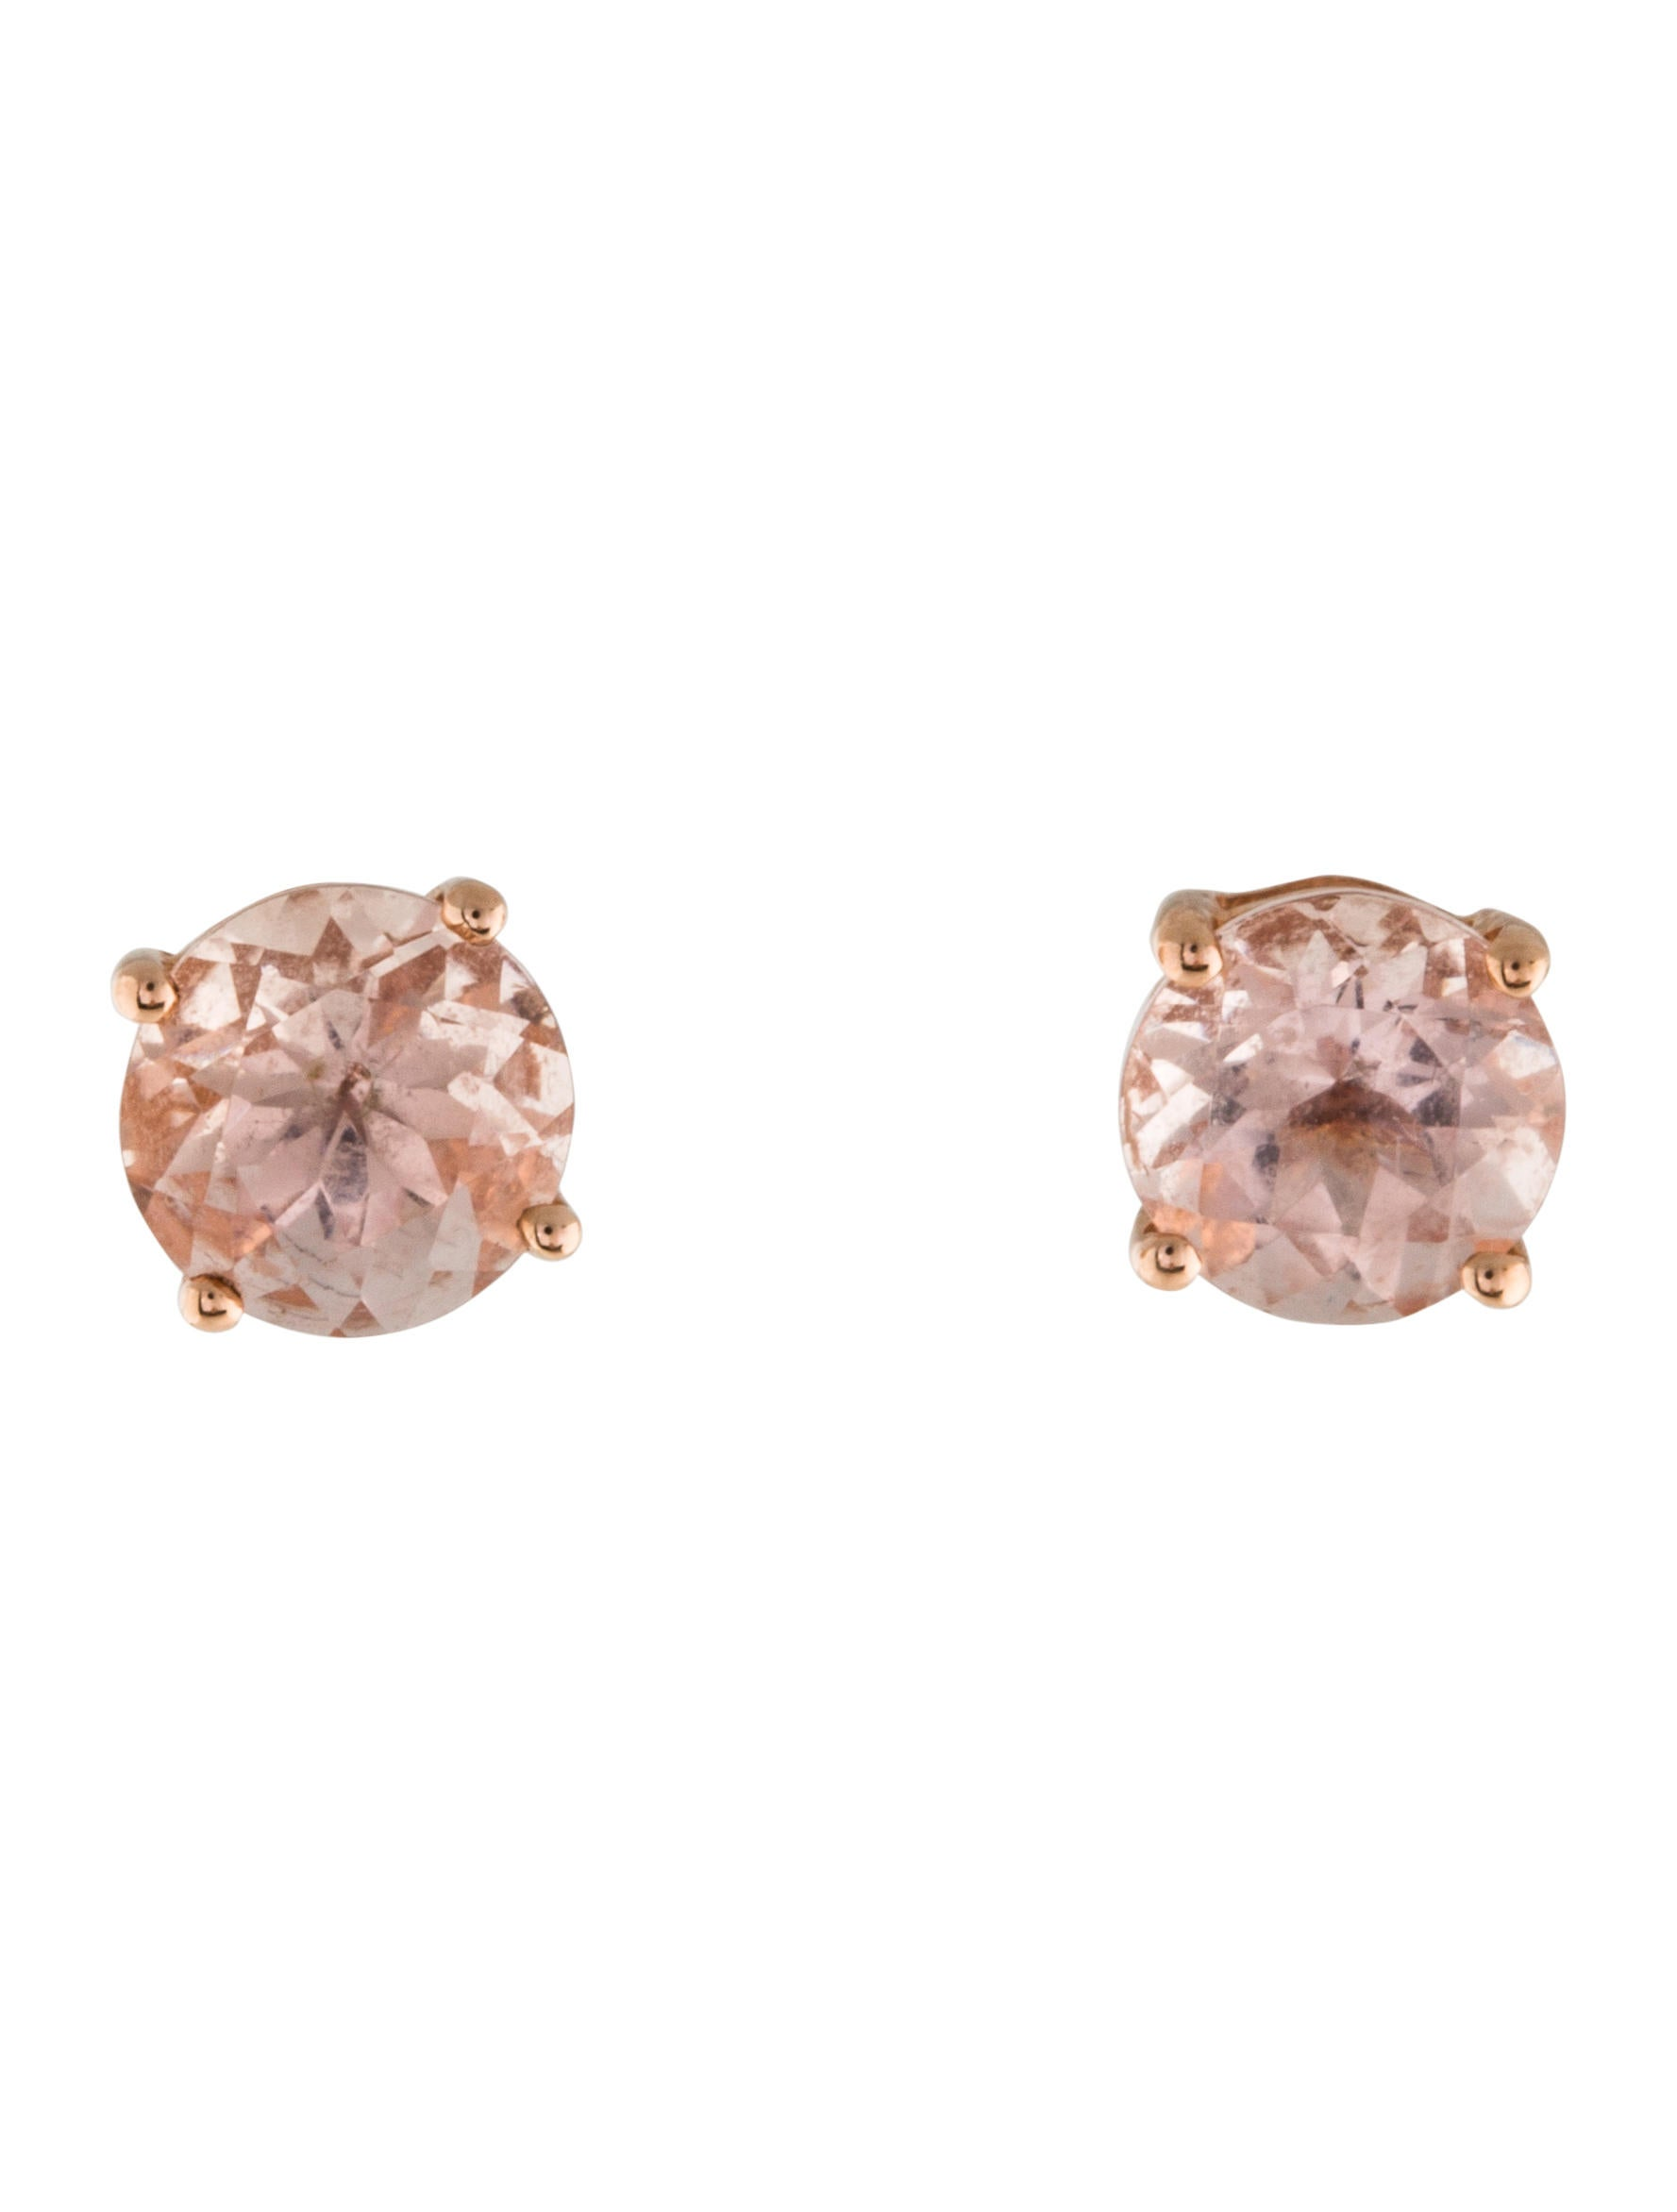 hei prd silver over jsp gold simulated sharpen wid morganite rose quartz product stud op earrings